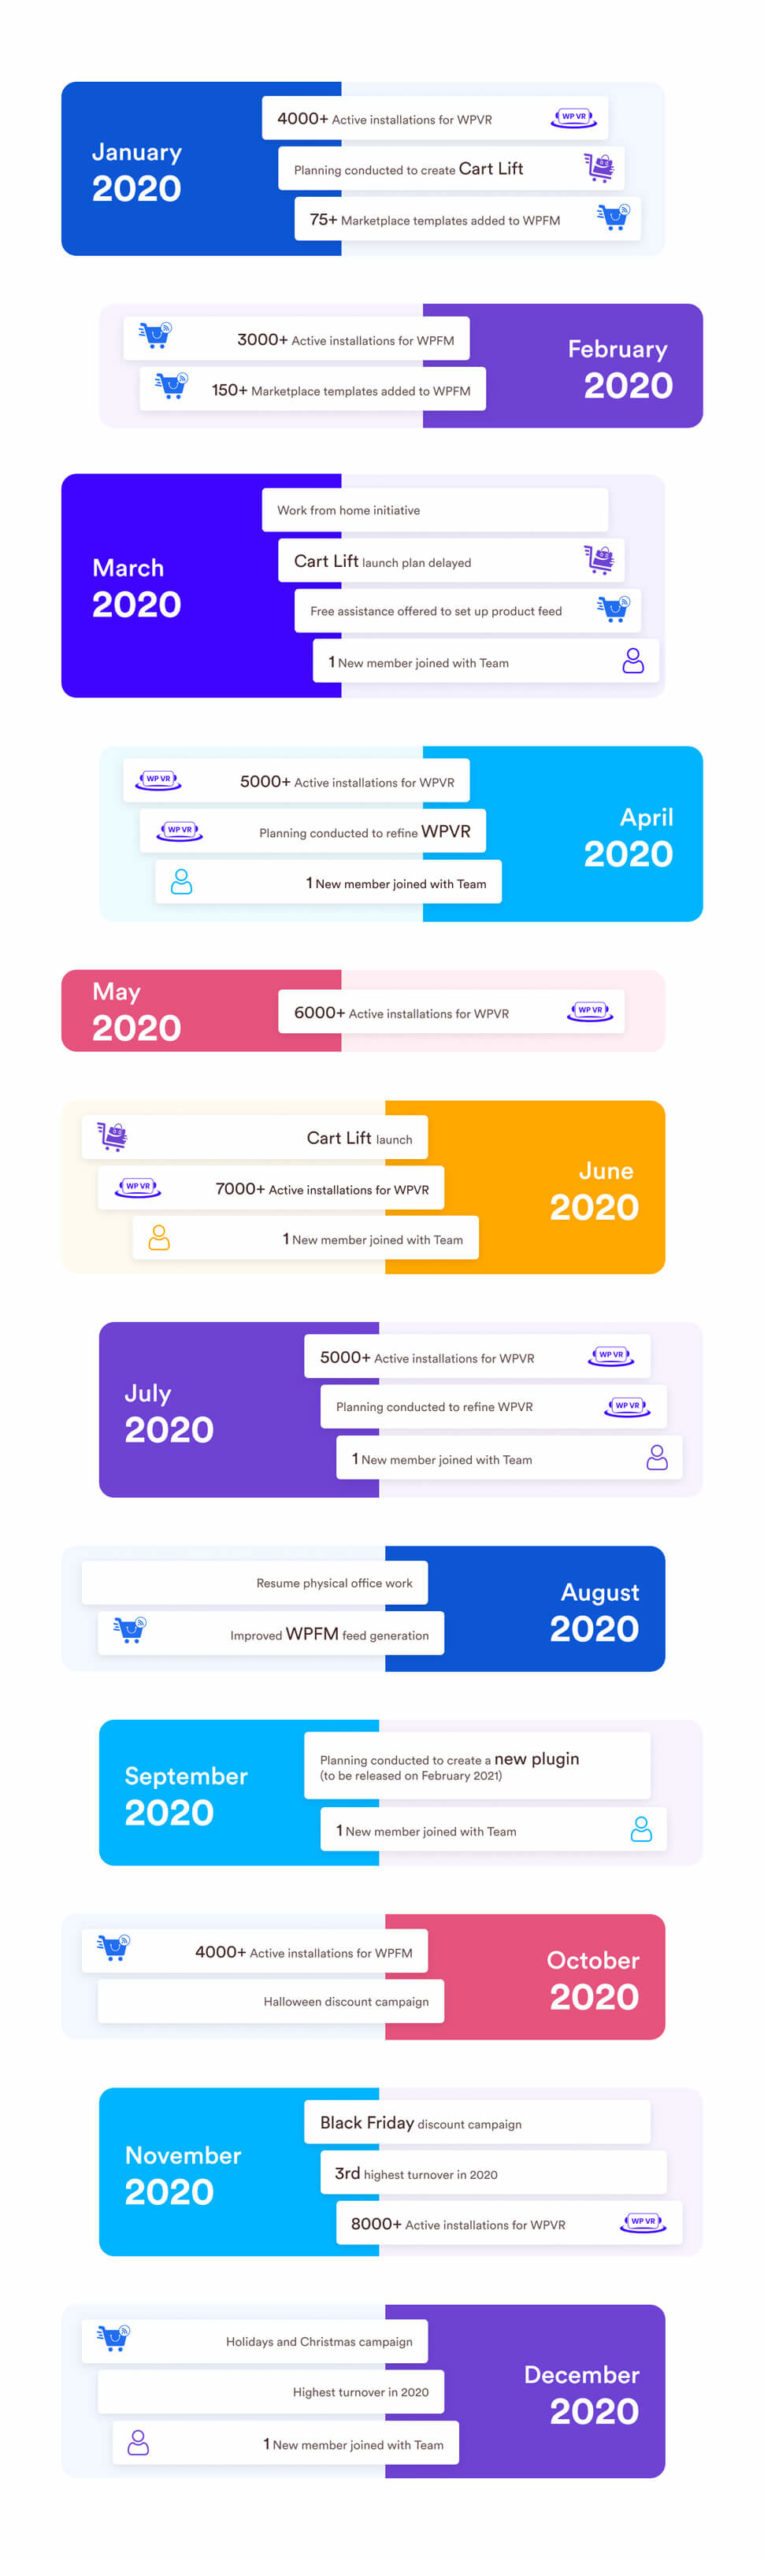 CodeRex Year In Review 2020 - Monthly Timeline